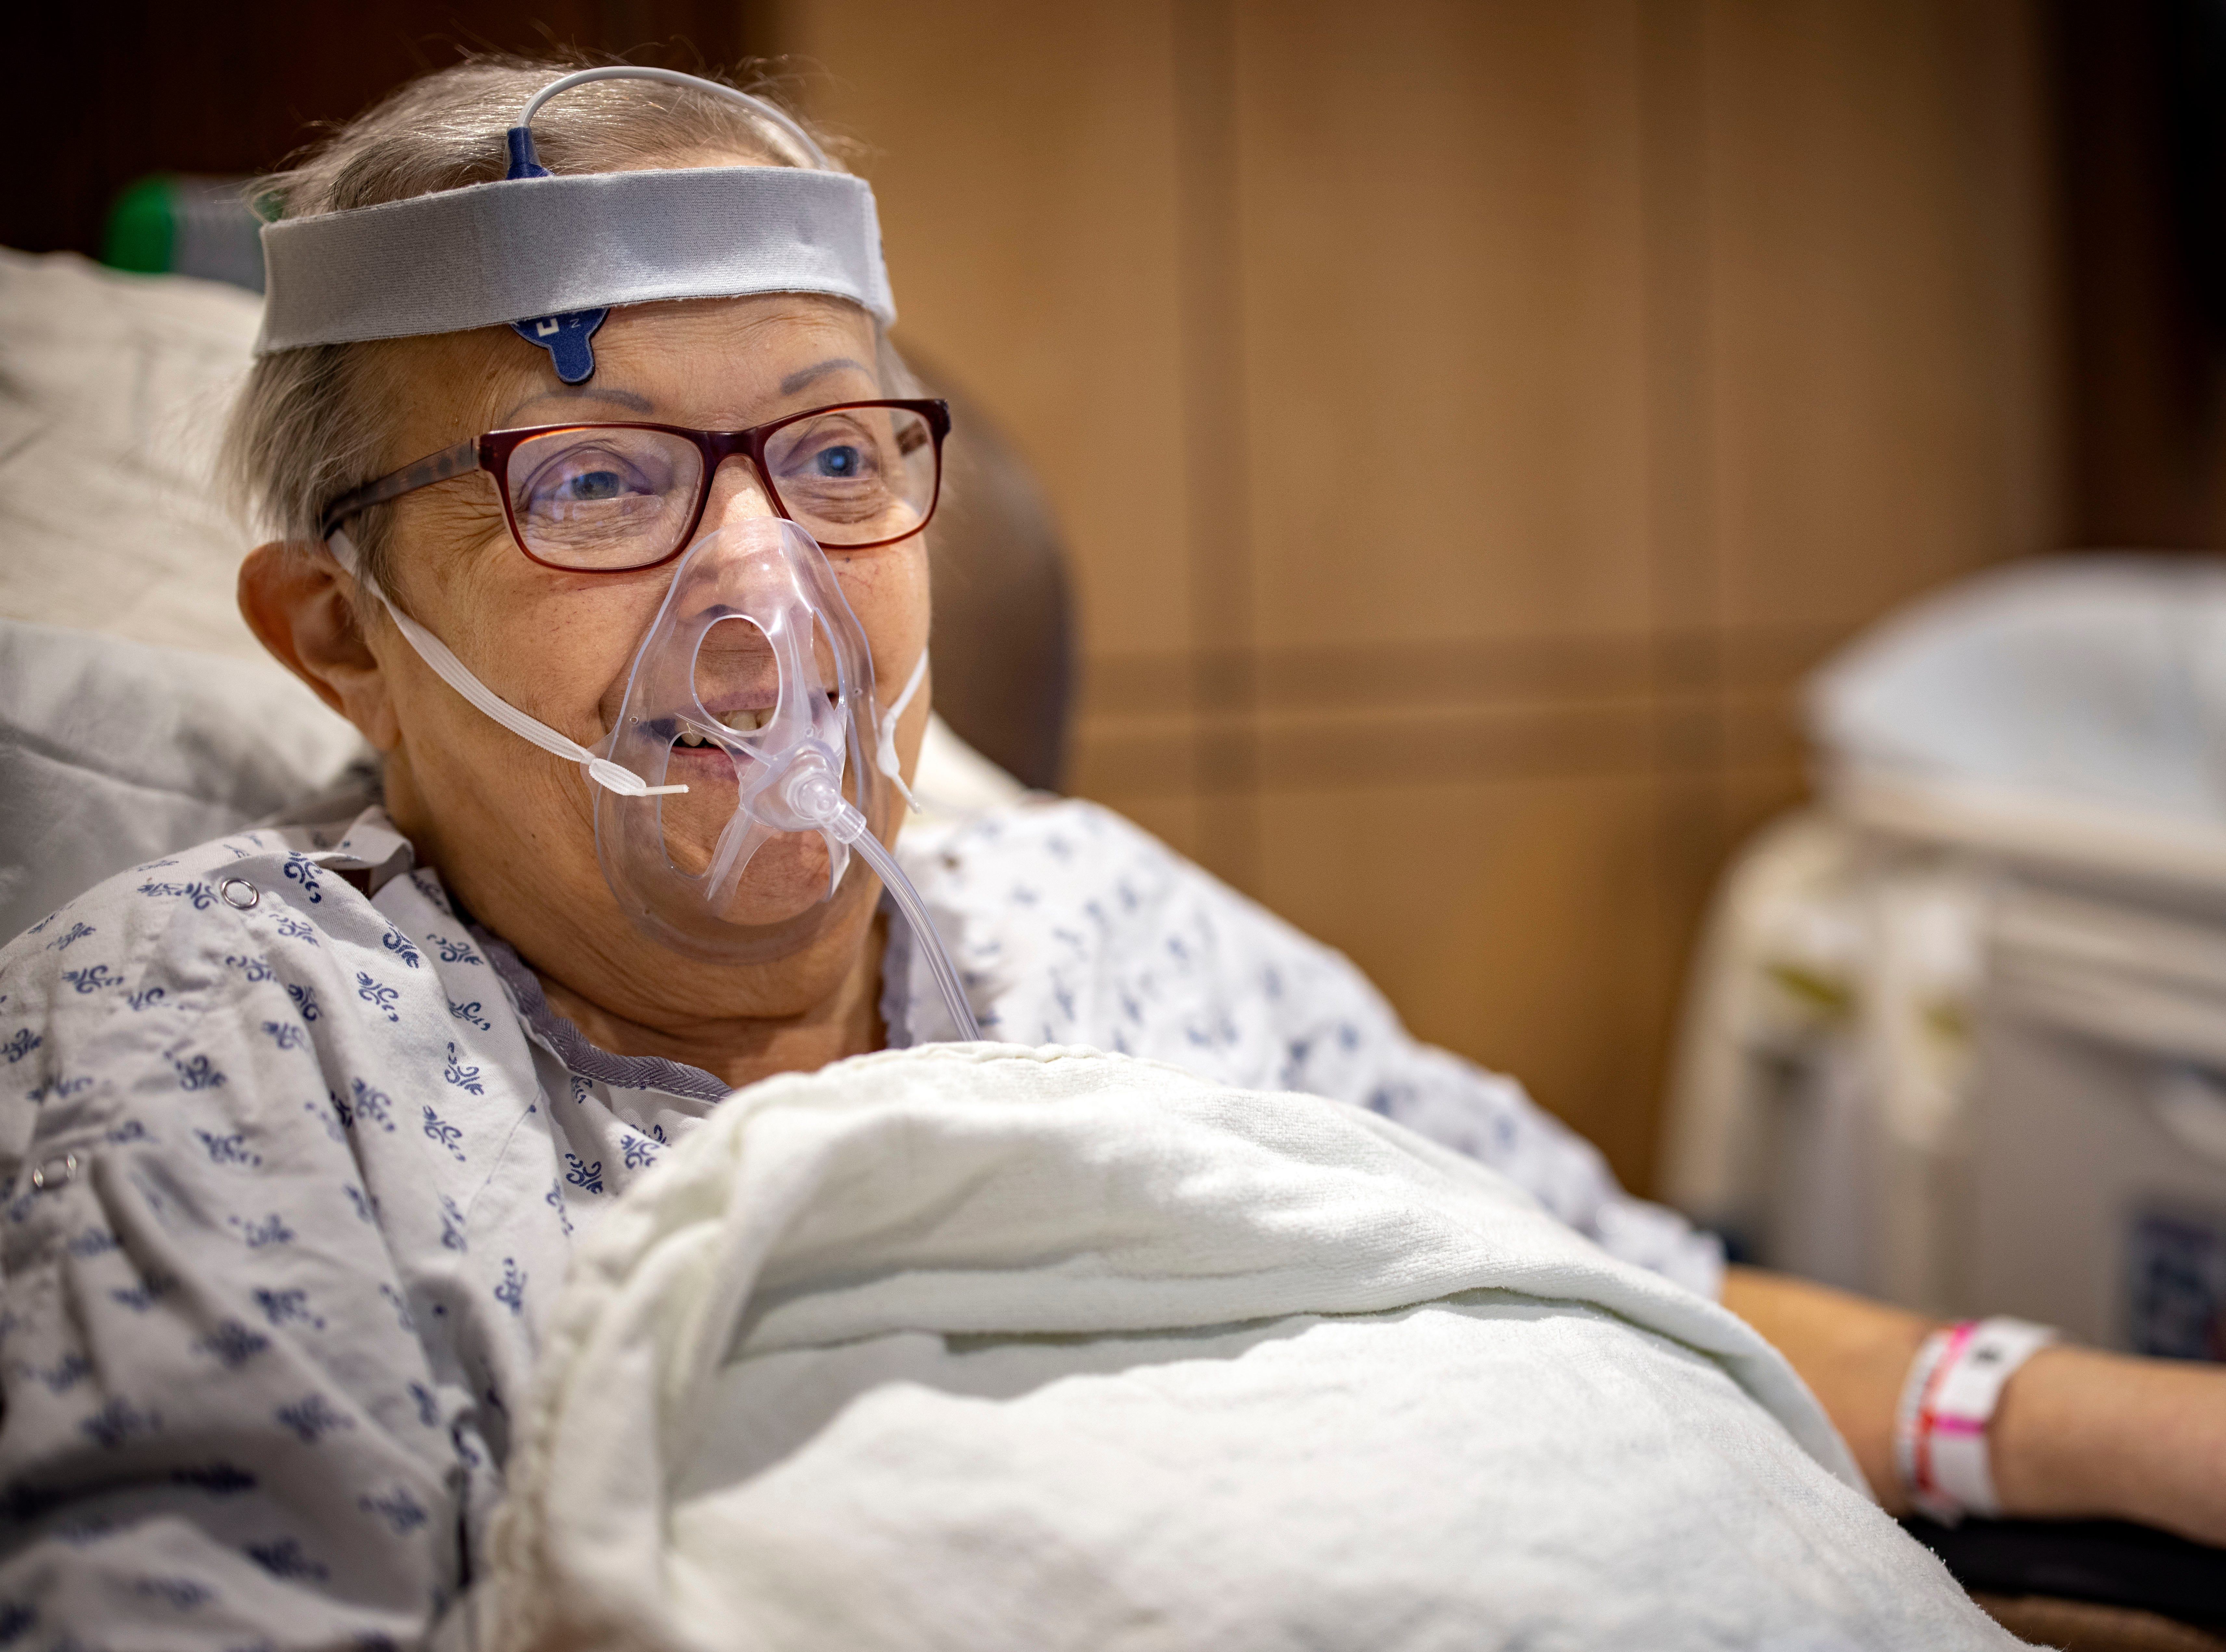 Jan Beeghly recovers in a room on the COVID floor at Mary Greeley Medical Center on Dec. 9, 2020. Beeghly died Feb. 2.